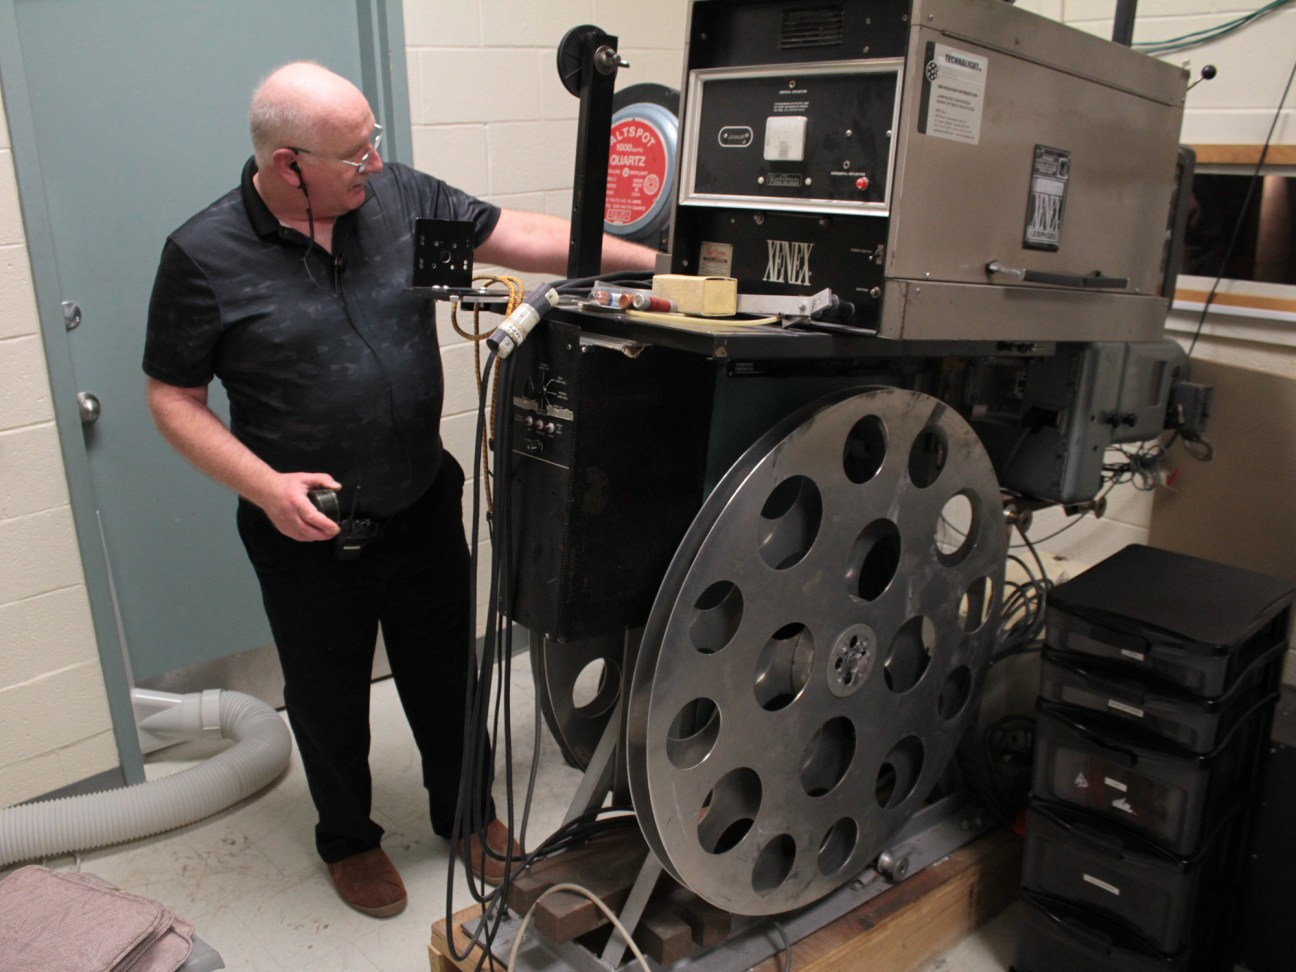 Projection operator Julian Gumley demonstrates how to work the 35mm projector that the OFC used in its earliest days.